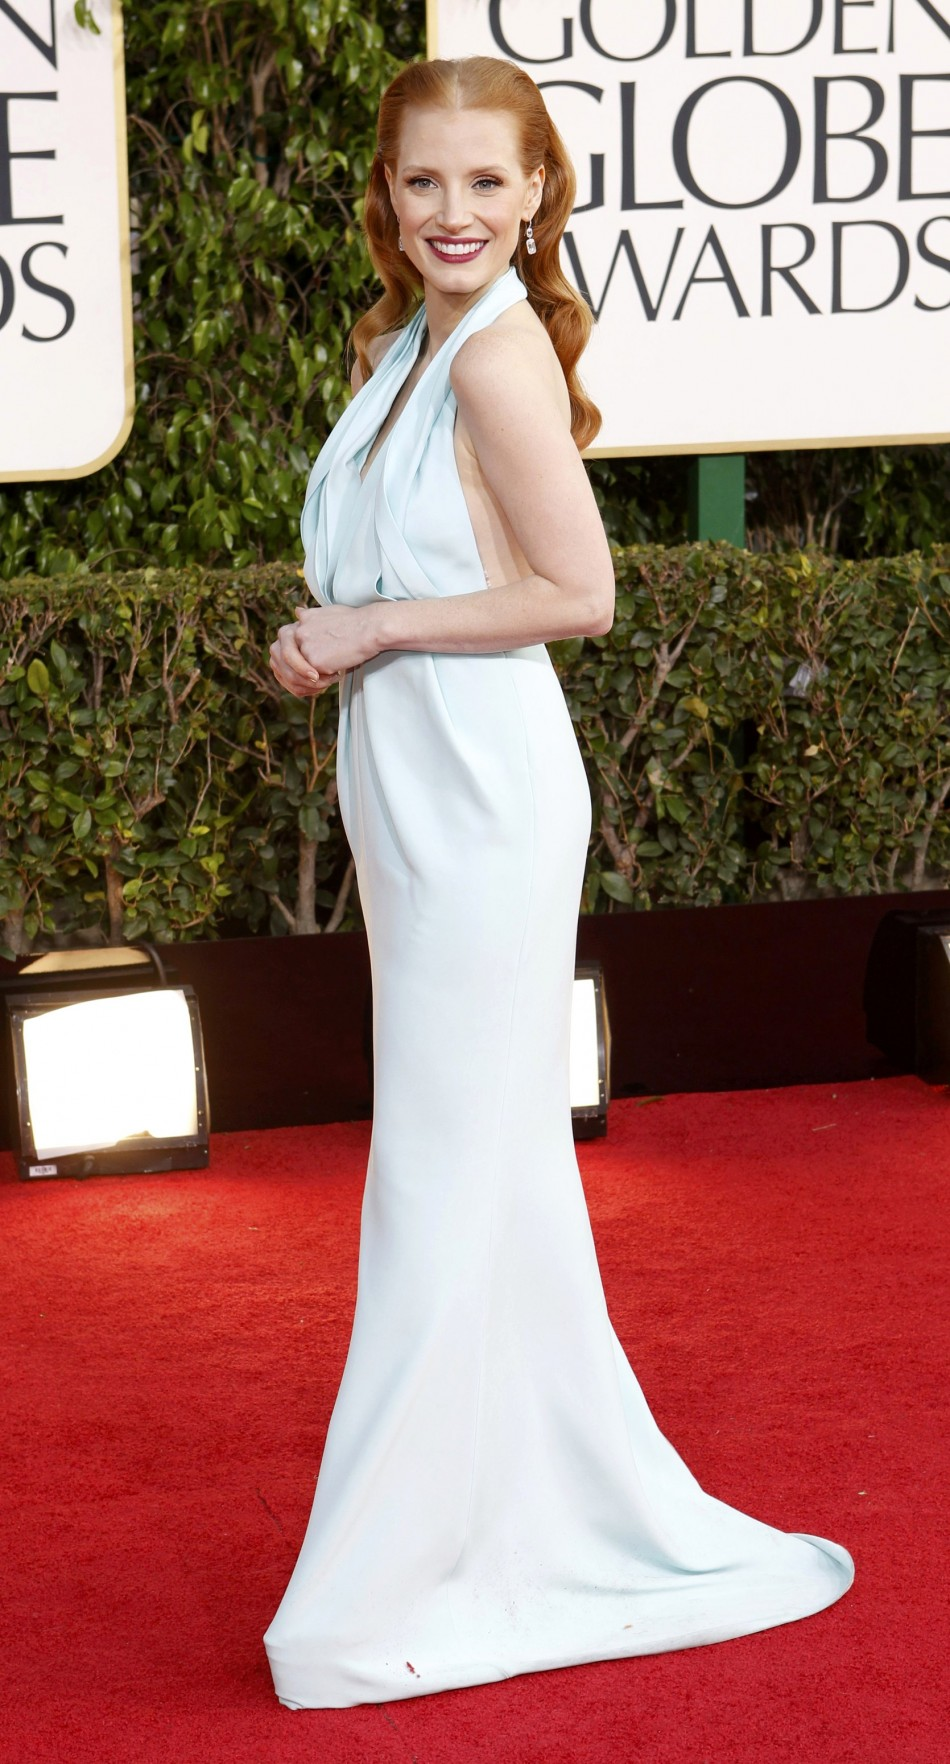 Actress Jessica Chastain arrives at the 70th annual Golden Globe Awards in Beverly Hills